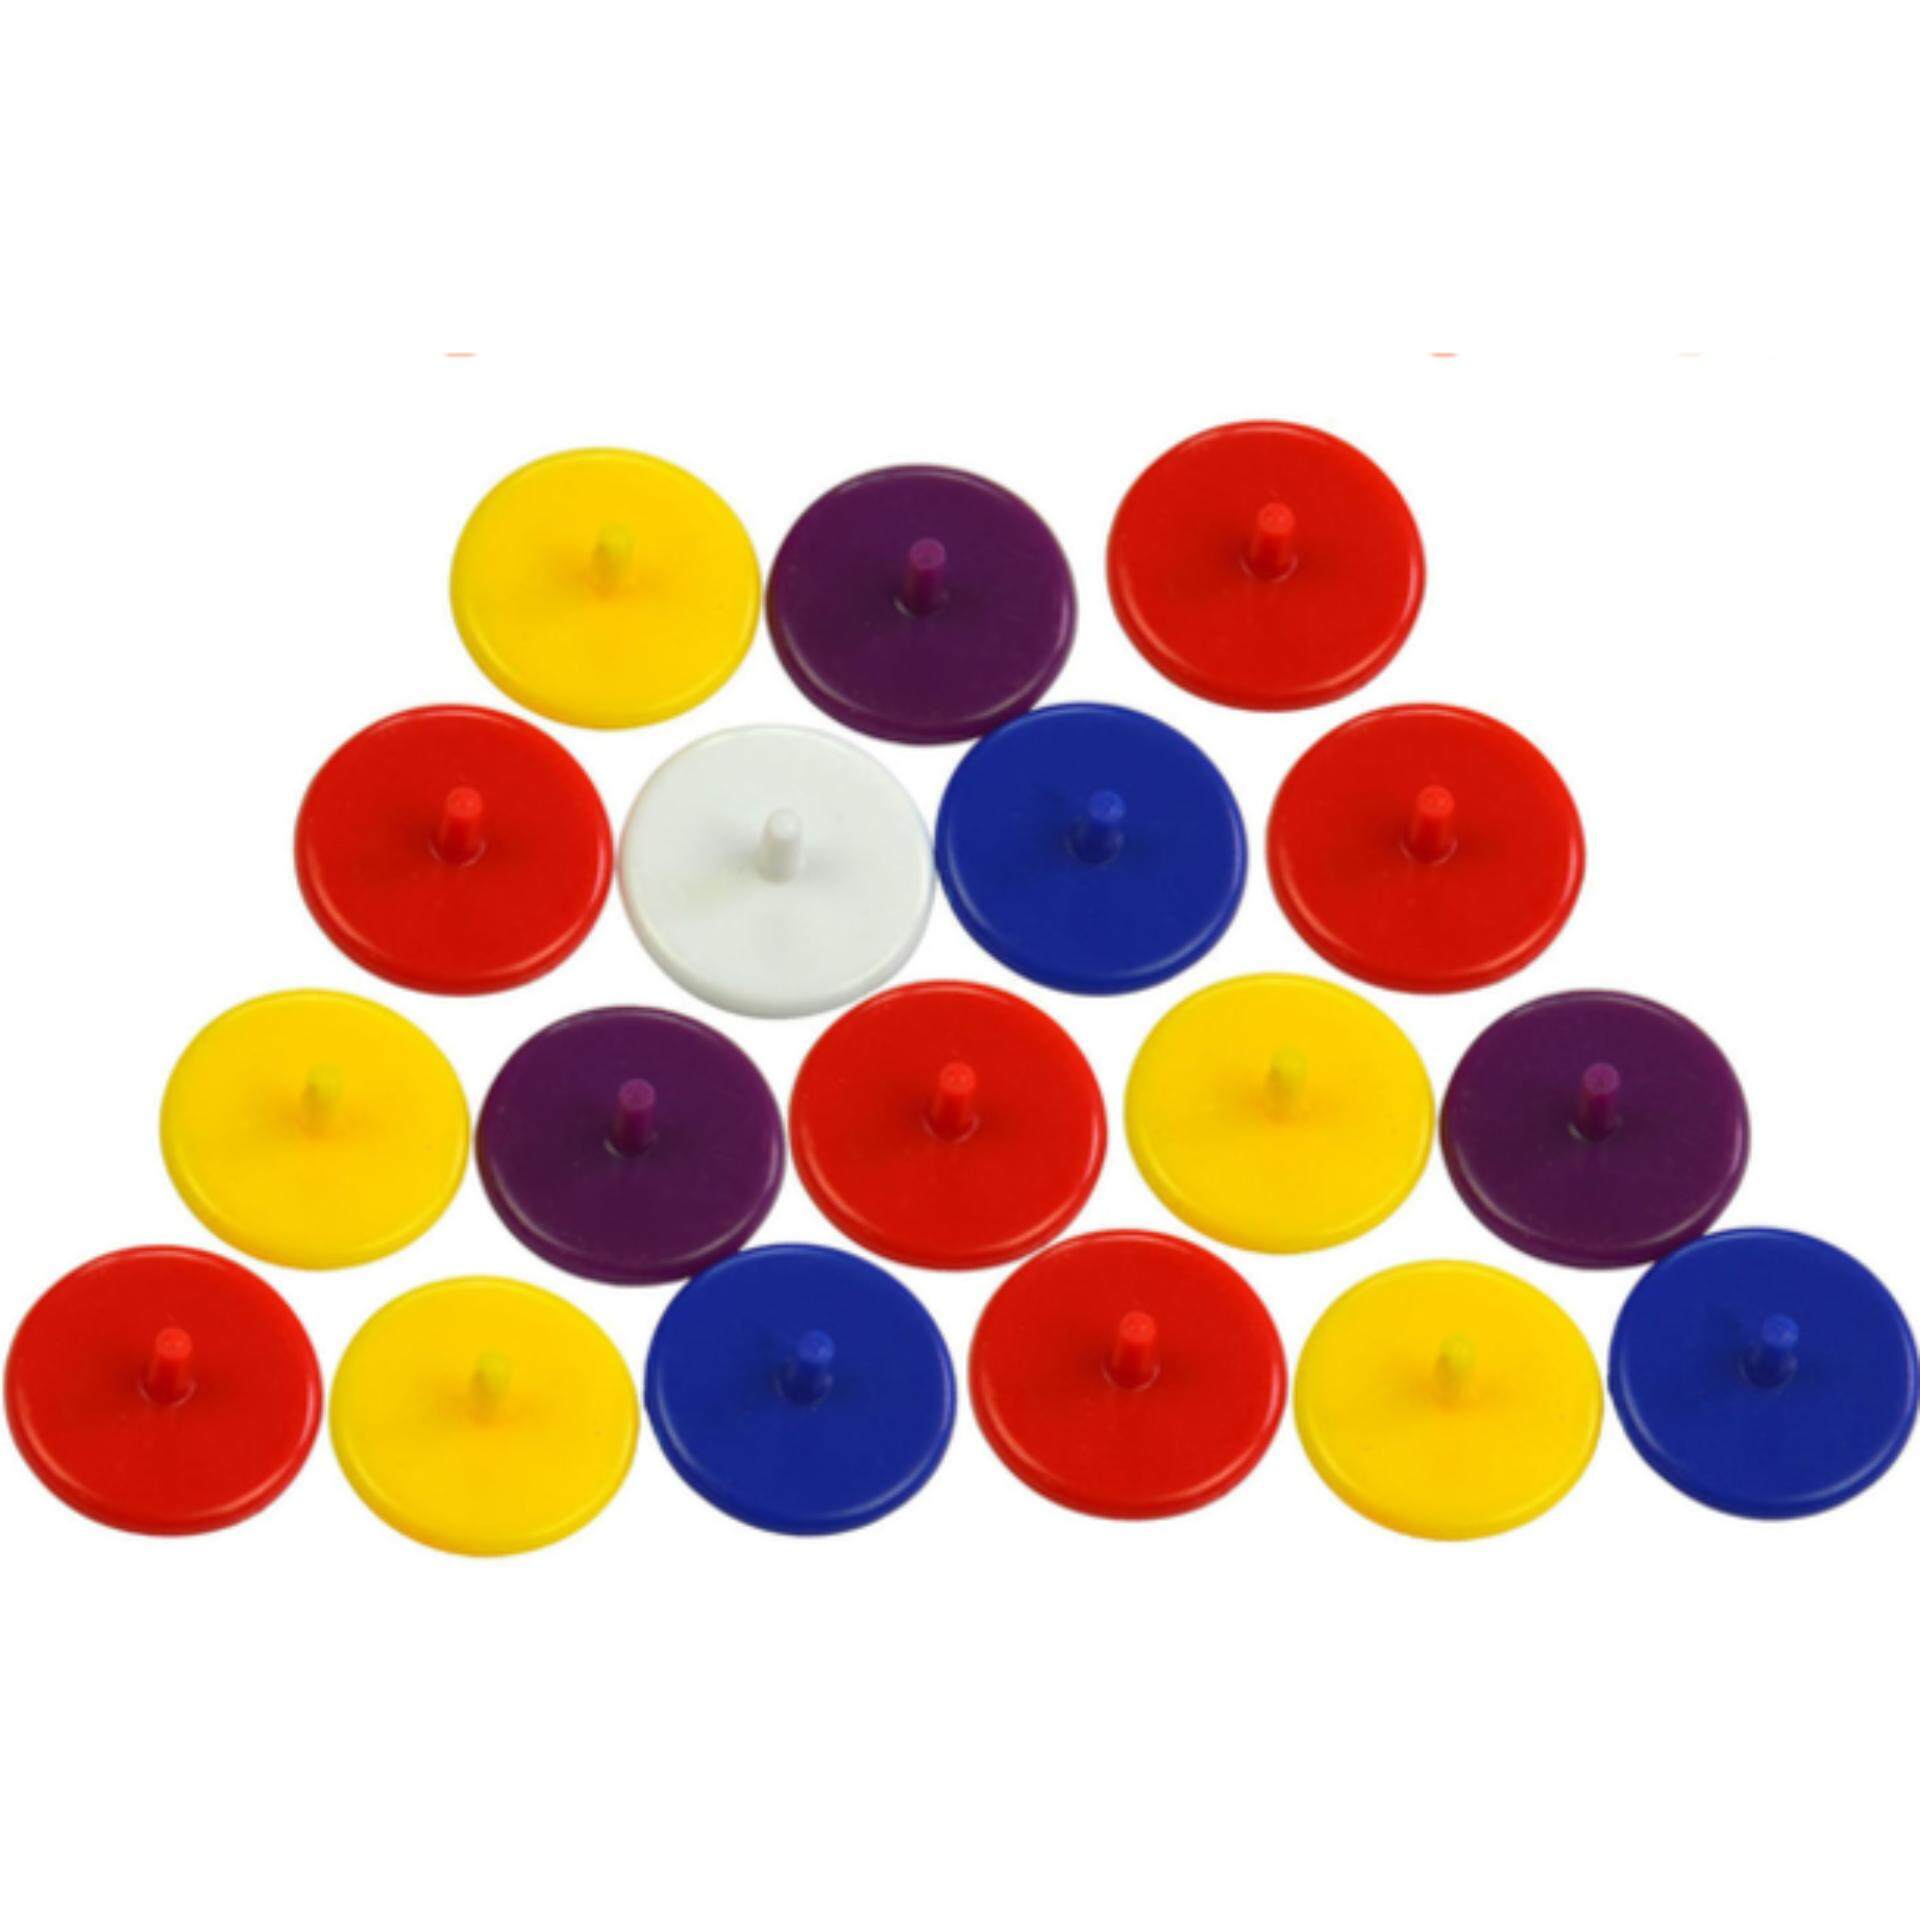 EXCEED 20Pcs size 24mm Plastic Round Golf Ball Markers Golfer Training Aid (Random Colour) MKM0001 กอล์ฟบอลมาร์คเกอร์